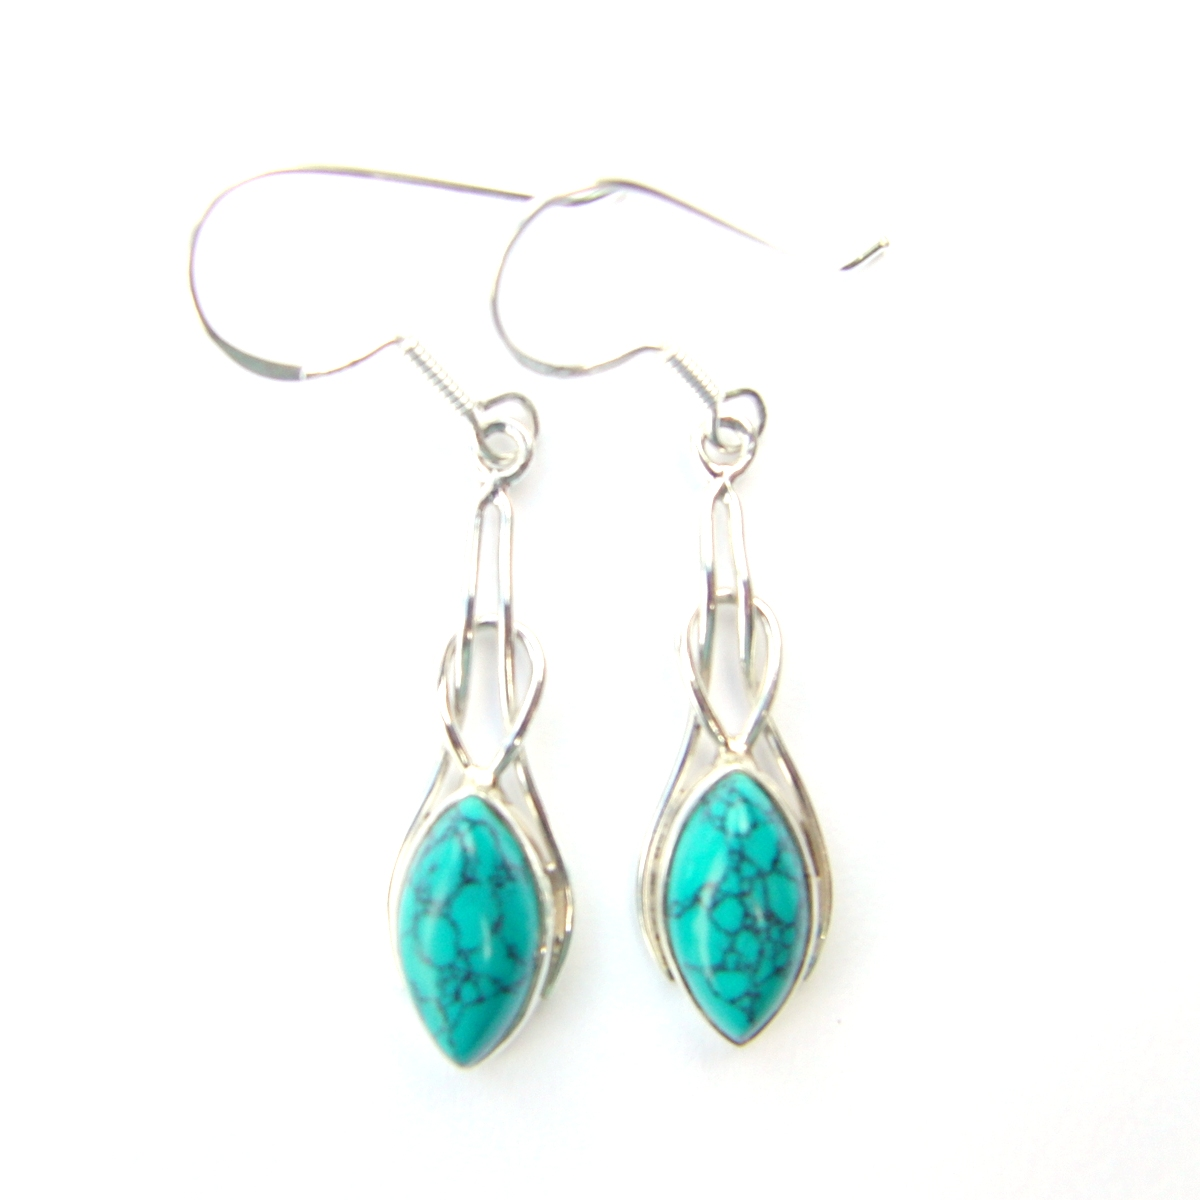 Turquoise Marquise Knot Earrings